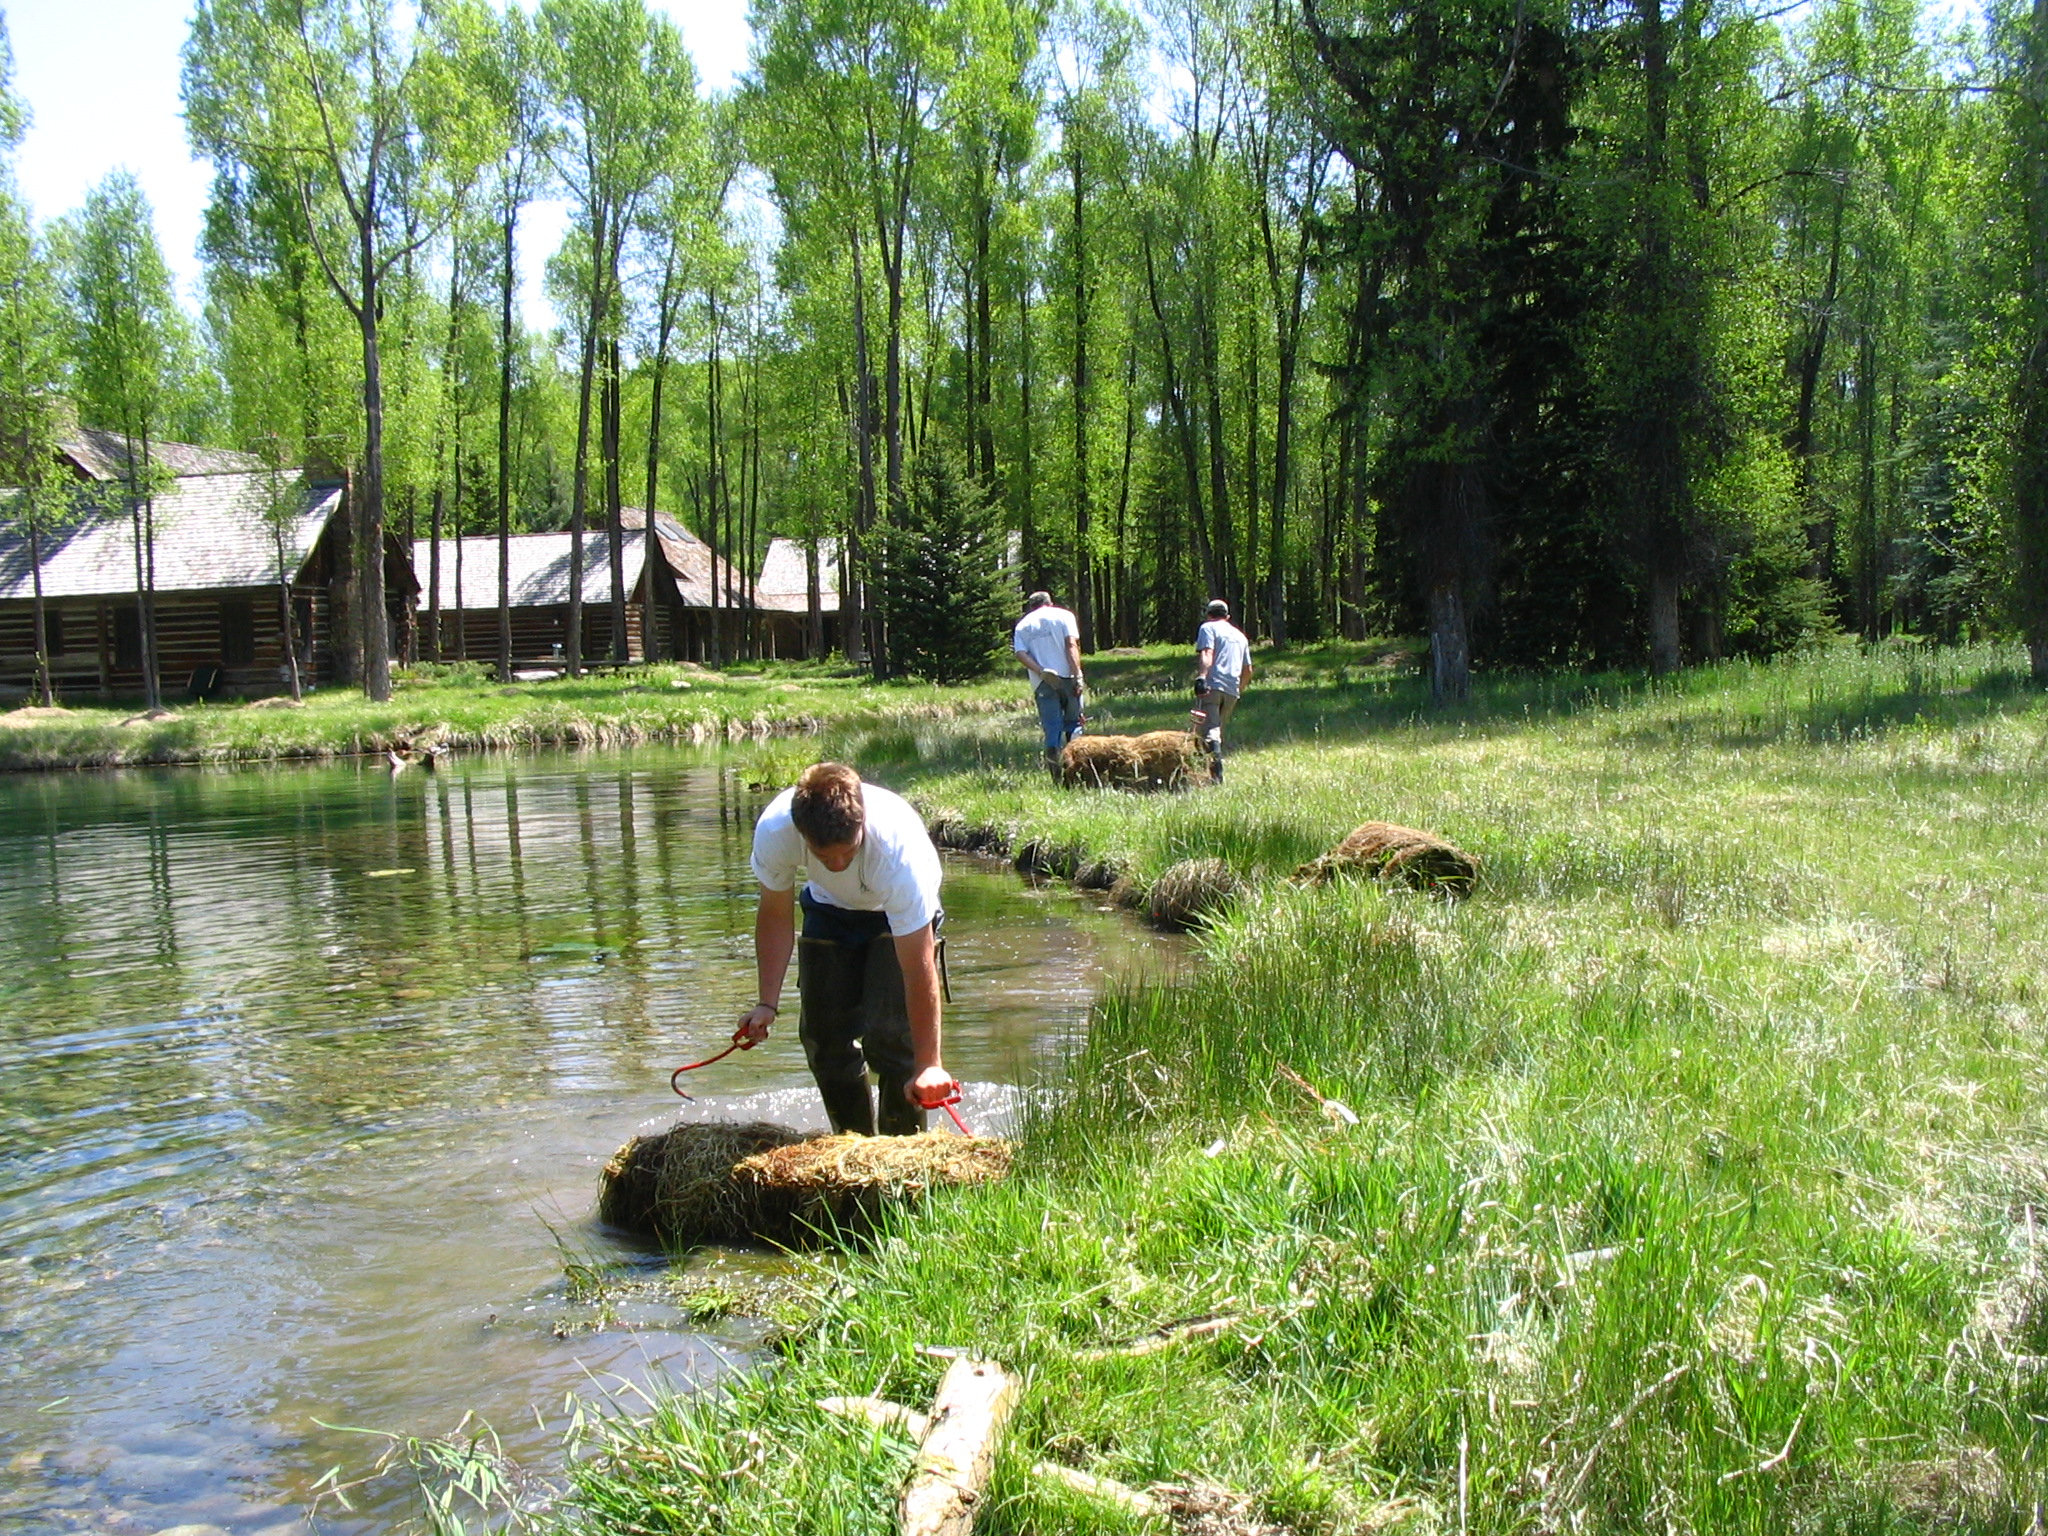 We help your clients - Build a wildlife pond | Improve stream habitat and fishing | Design site appropriate, native seed mixes | Develop in wetlands | Navigate Teton Co. WY environmental regulations | Acquire building permits in the Teton Co, WY Natural Resource Overlay | Purchase a property in Teton Co WY to increase buildable square footage through the Development Option Plan | Design a septic system for high groundwater areas | Control noxious weeds